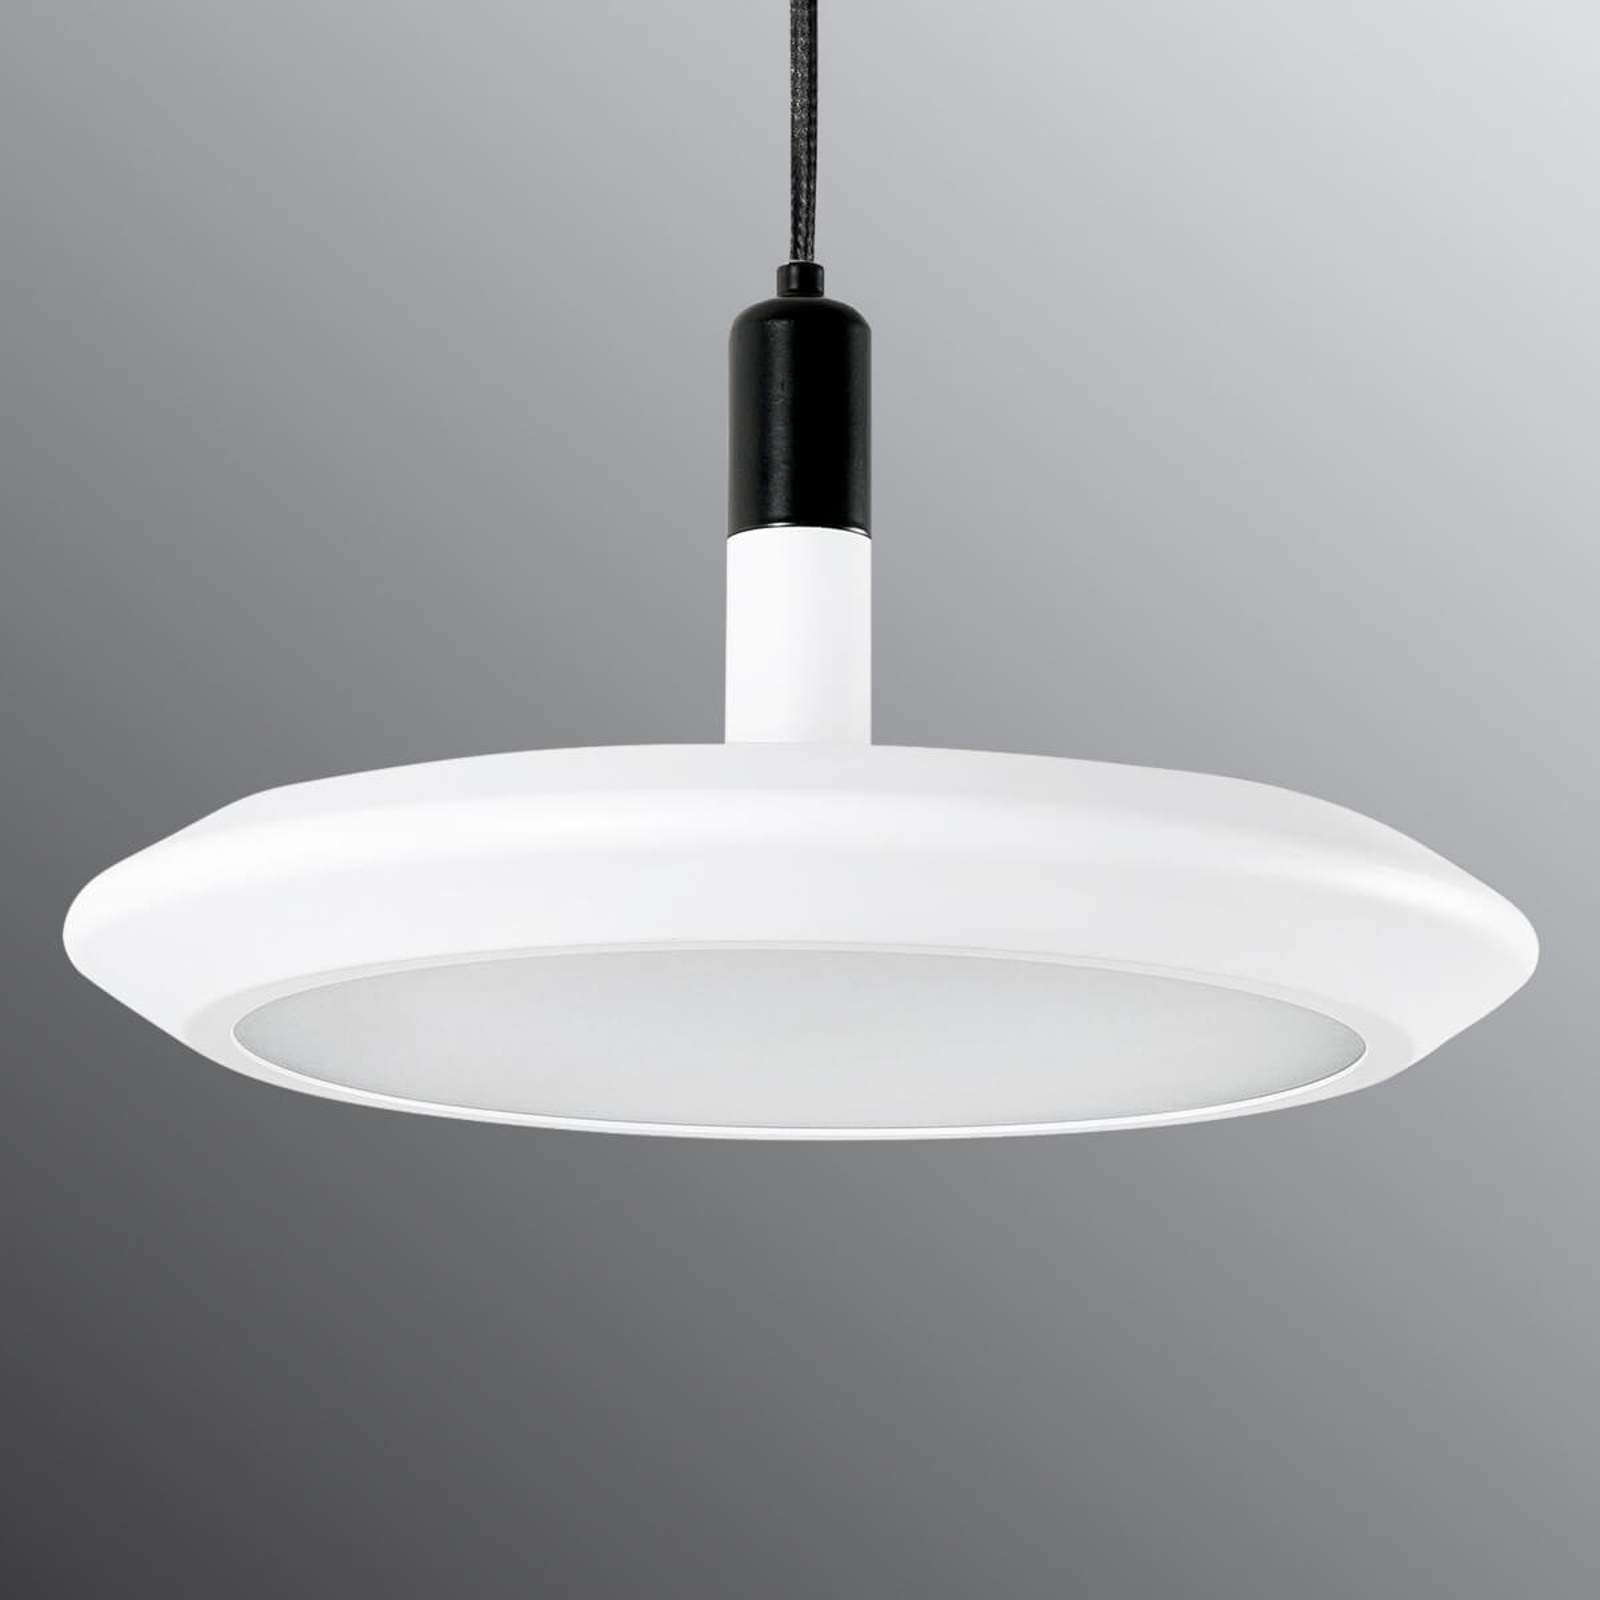 Planeet - ronde LED hanglamp in wit